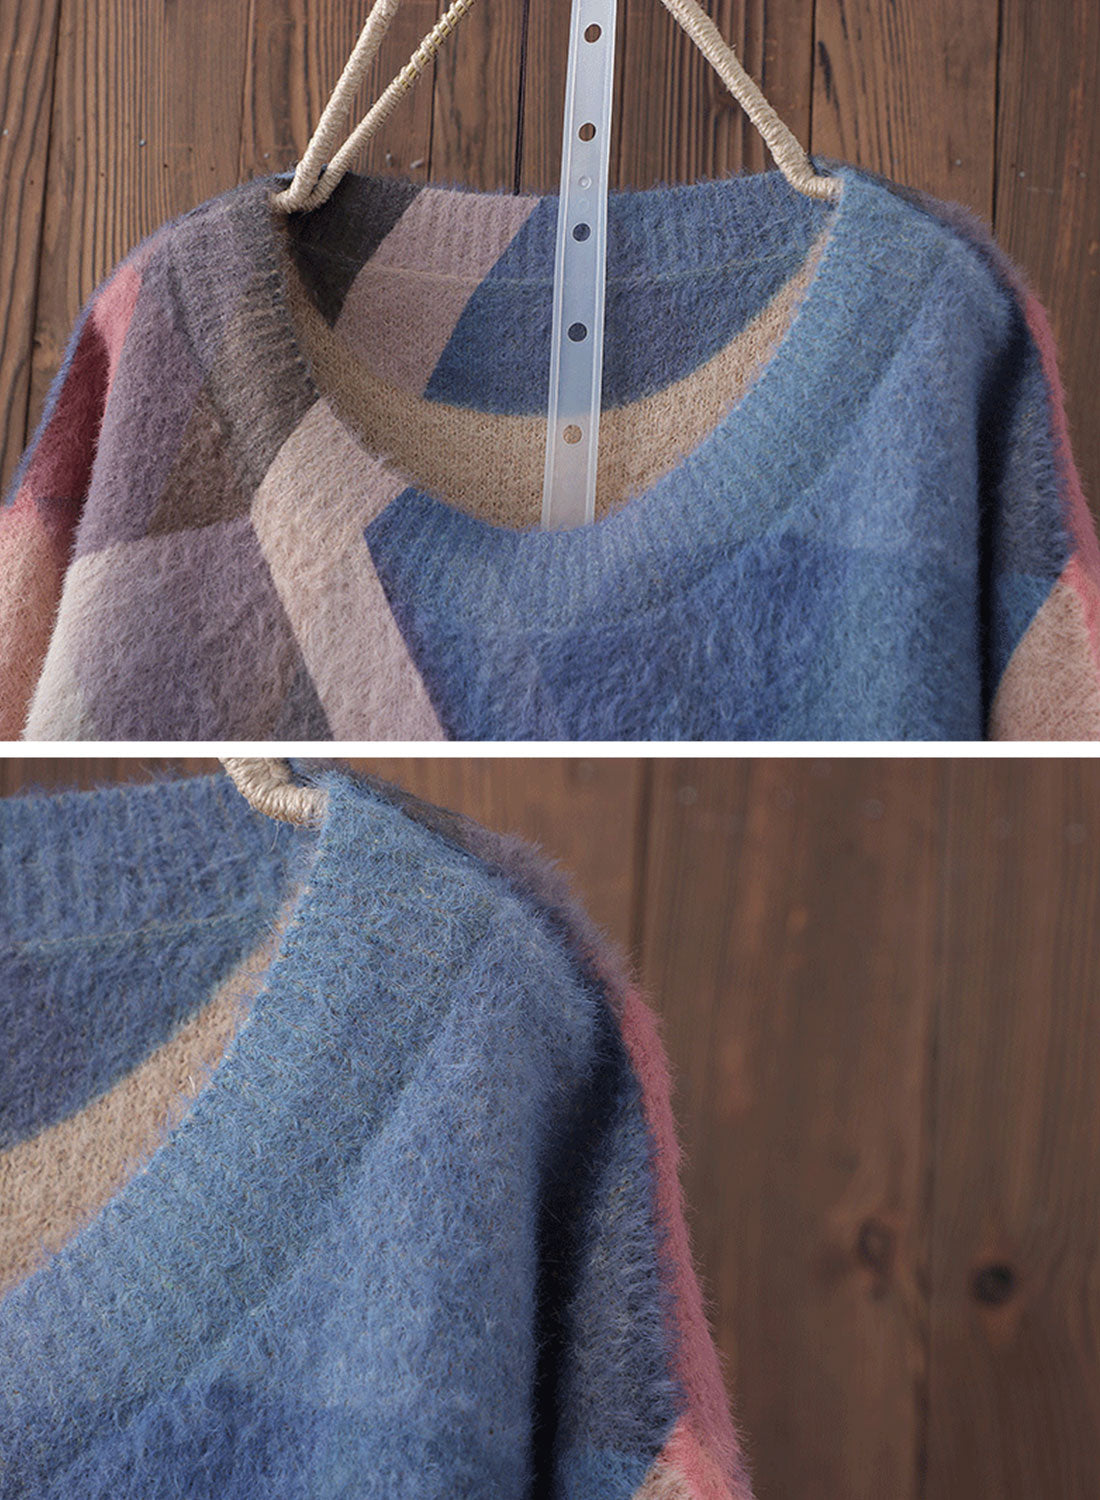 Vintage Full-Sleeve Cotton Sweater Details 1